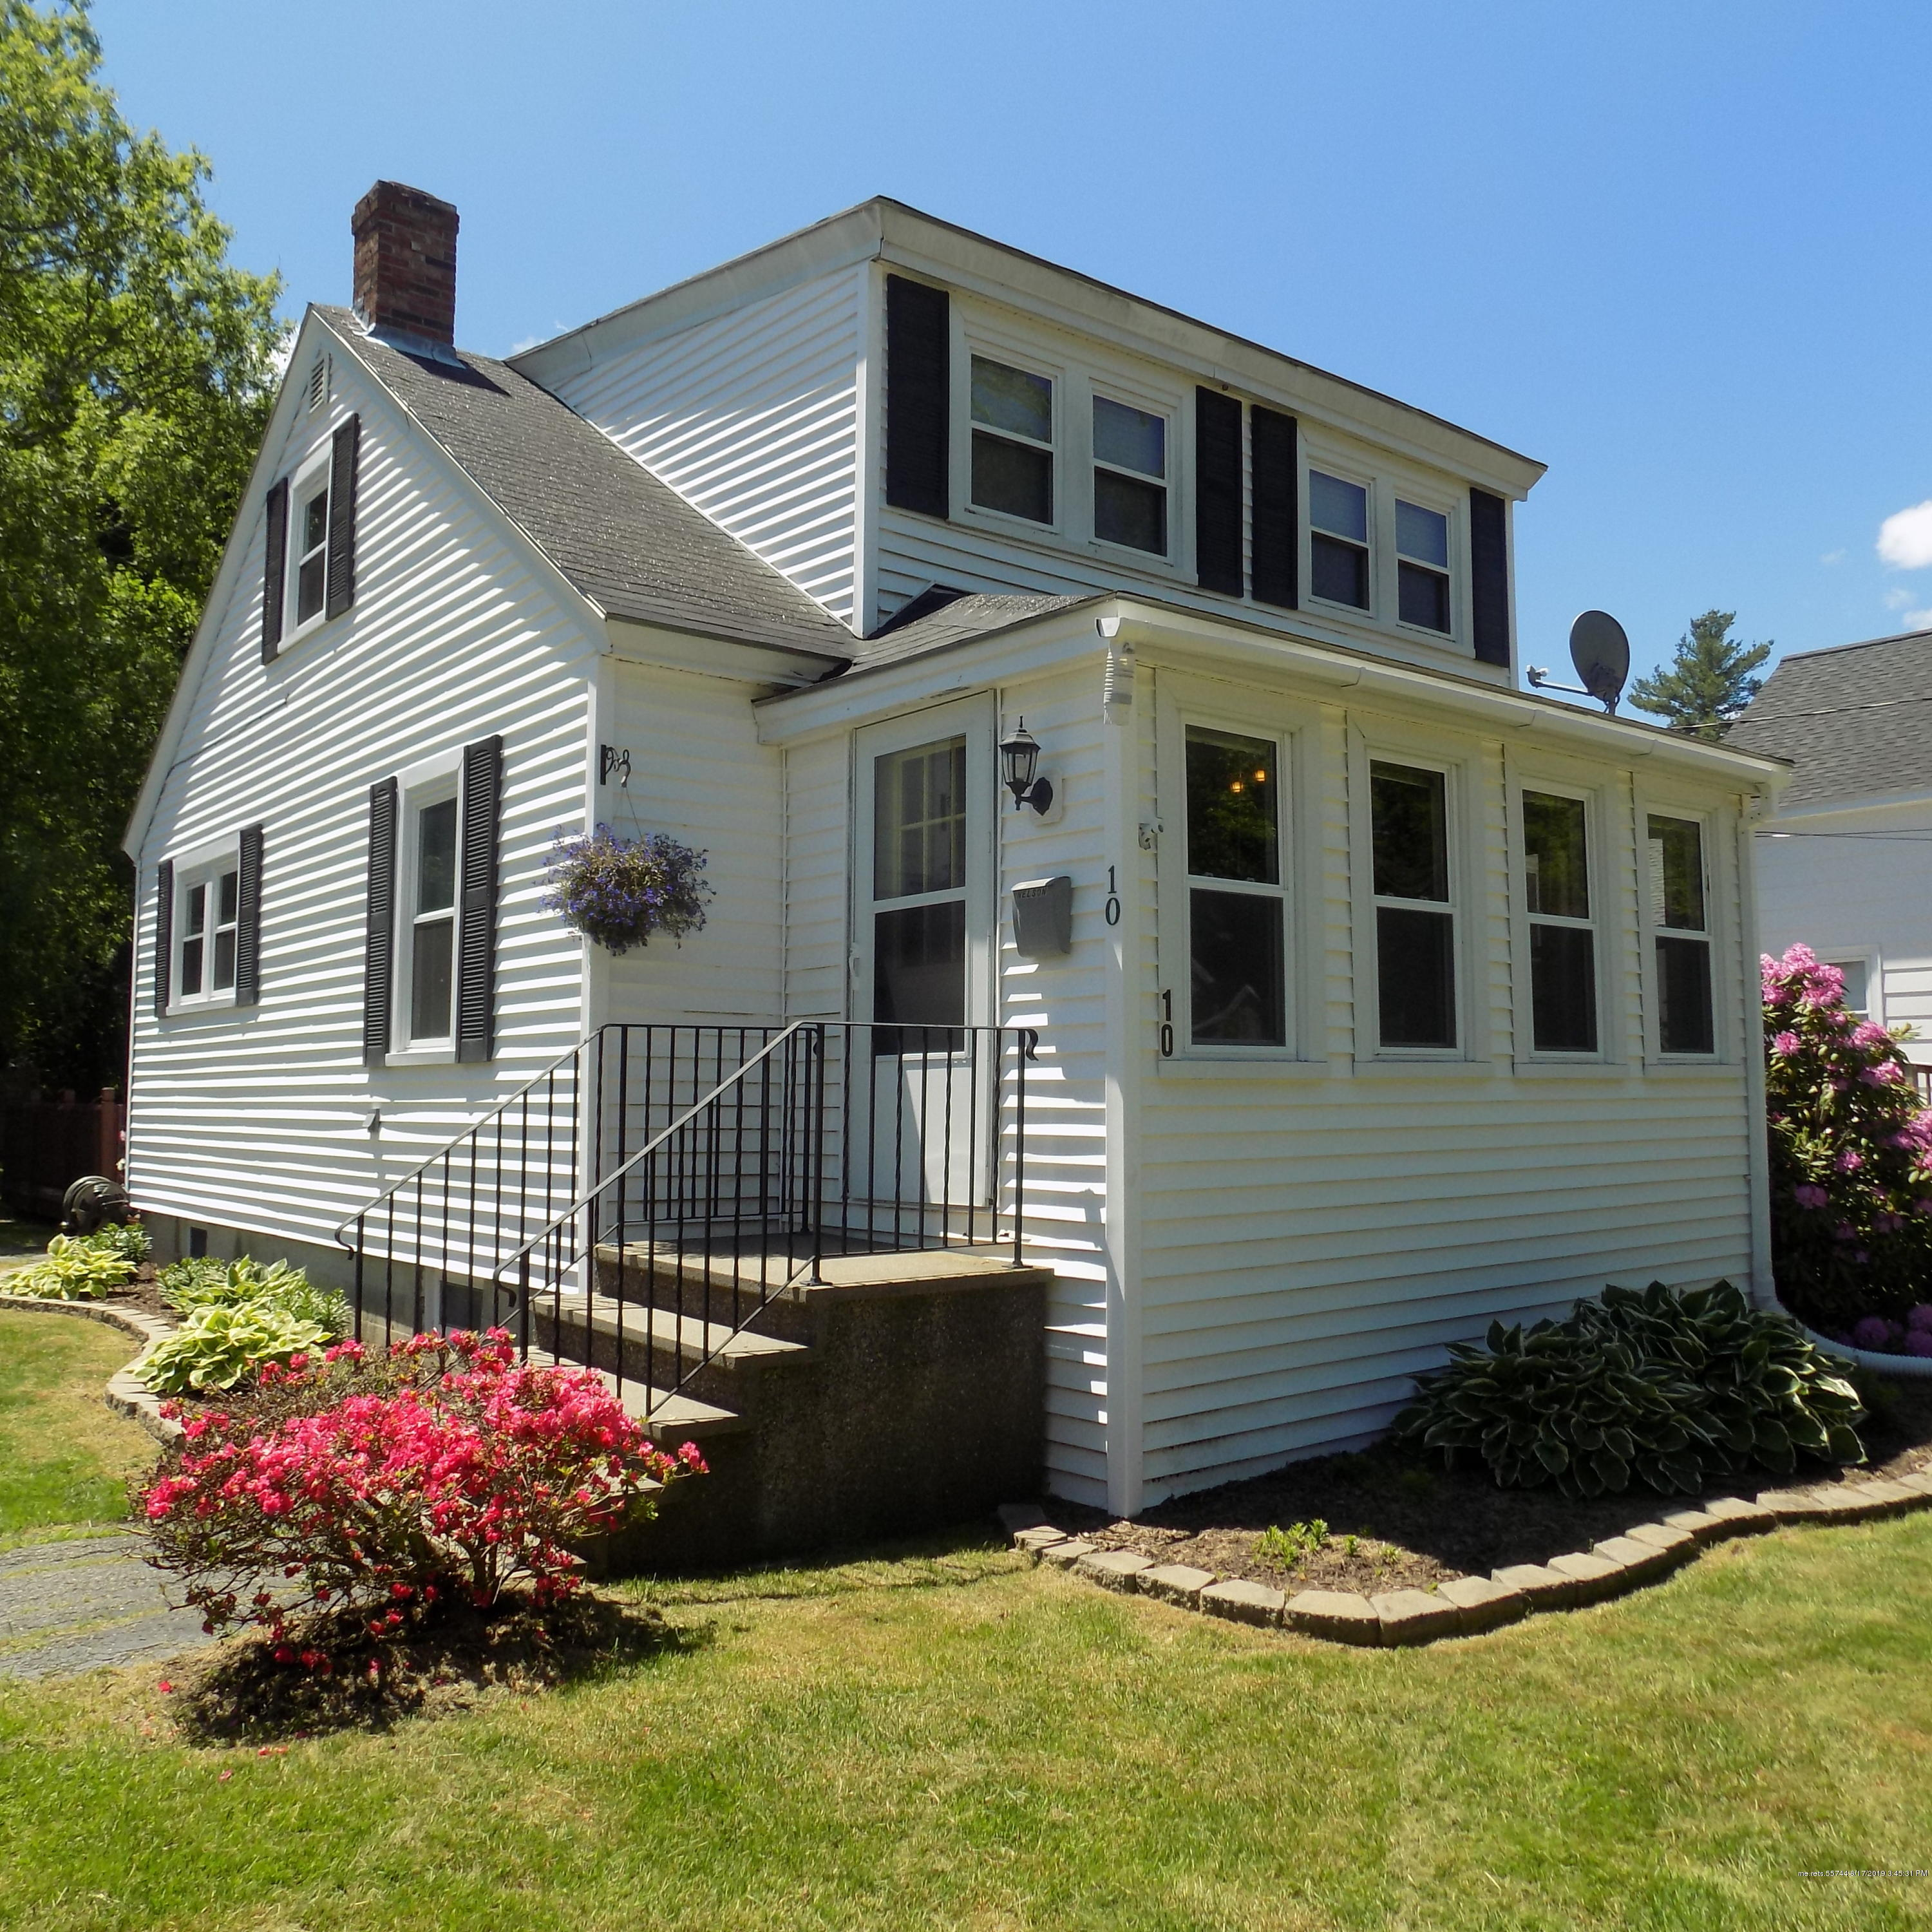 10 Rutland Street, Bangor, 04401 | F O Bailey Real Estate